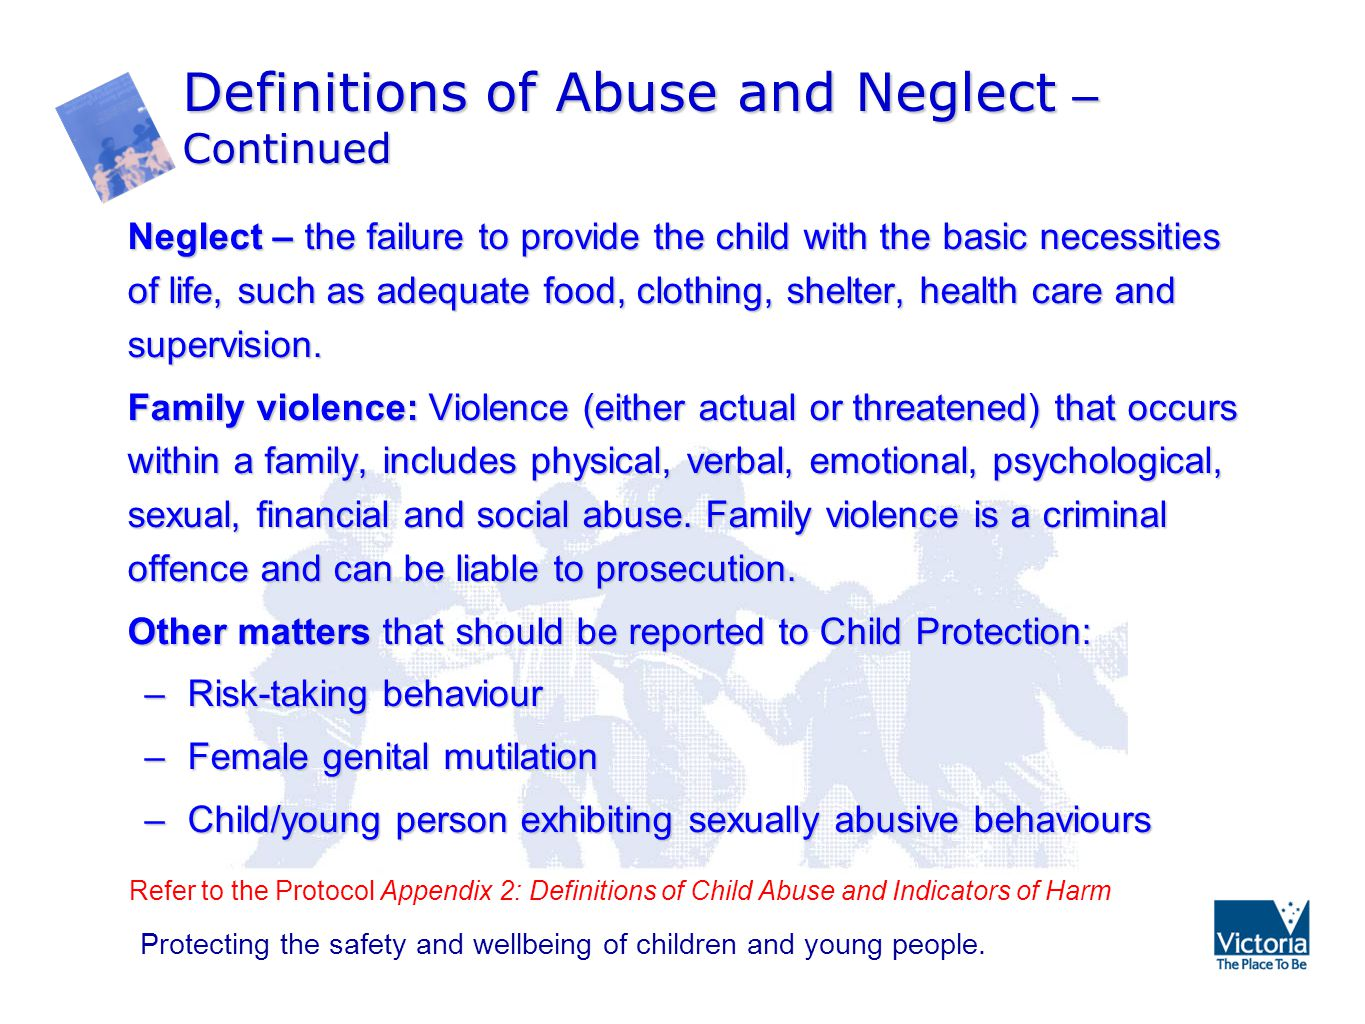 definitions of child abuse and neglect Child and family services manual c child protective services 2 definitions of abuse and neglect table of contents 21 introduction 22 injury and threat of injury or harm to a child 23 physical abuse 231 statutory and regulatory definition 232 types of physical abuse 2321 asphyxiation 2322.